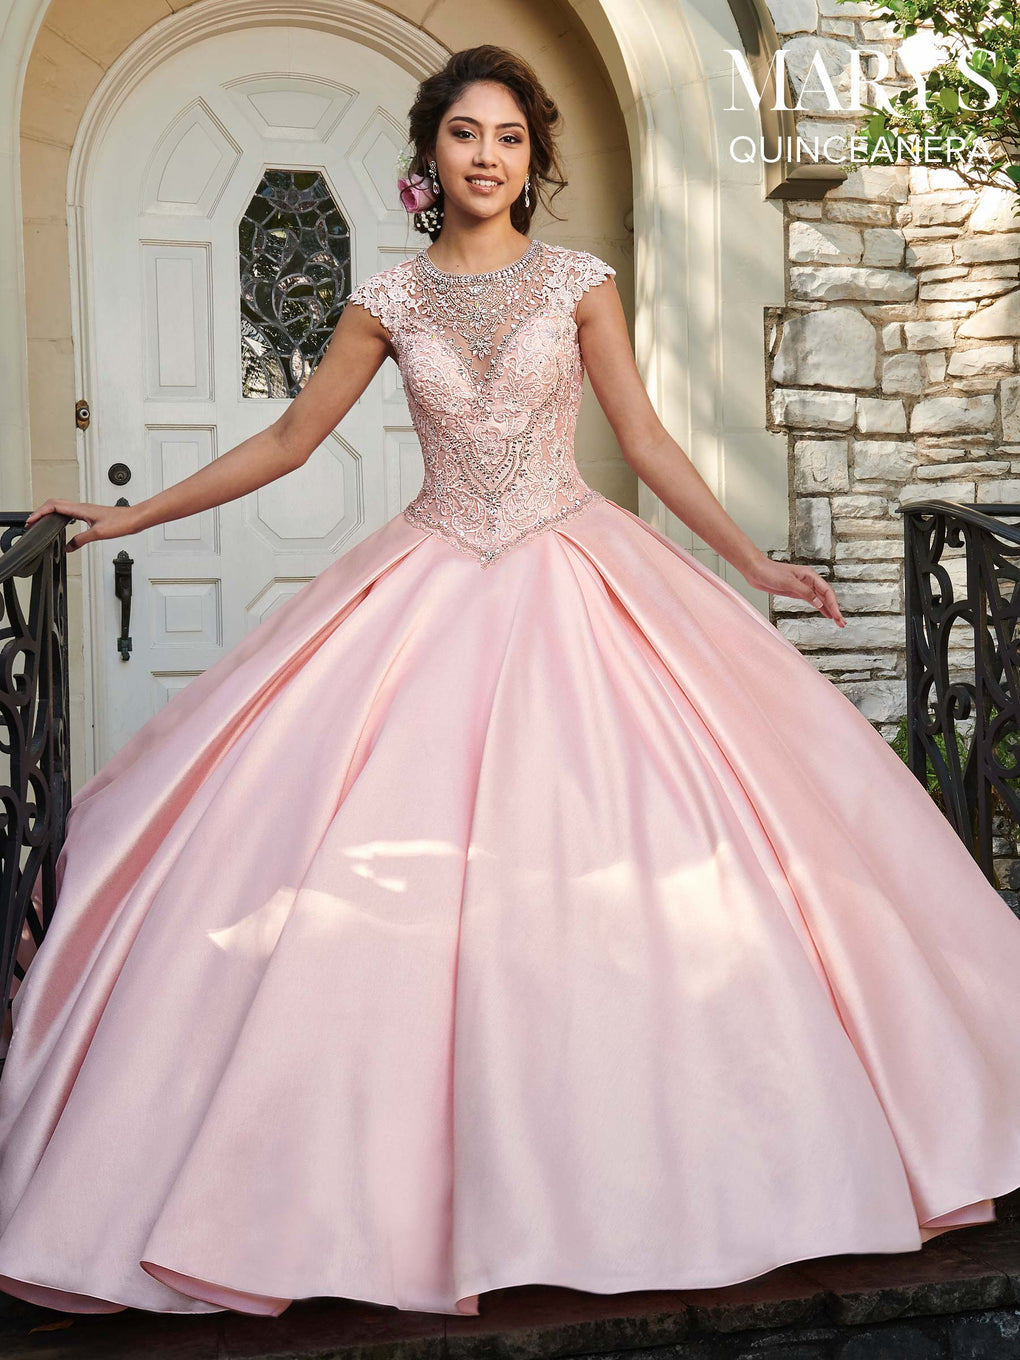 Marys Quinceanera Dresses in Blush, Emerald, Ivory, or White Color